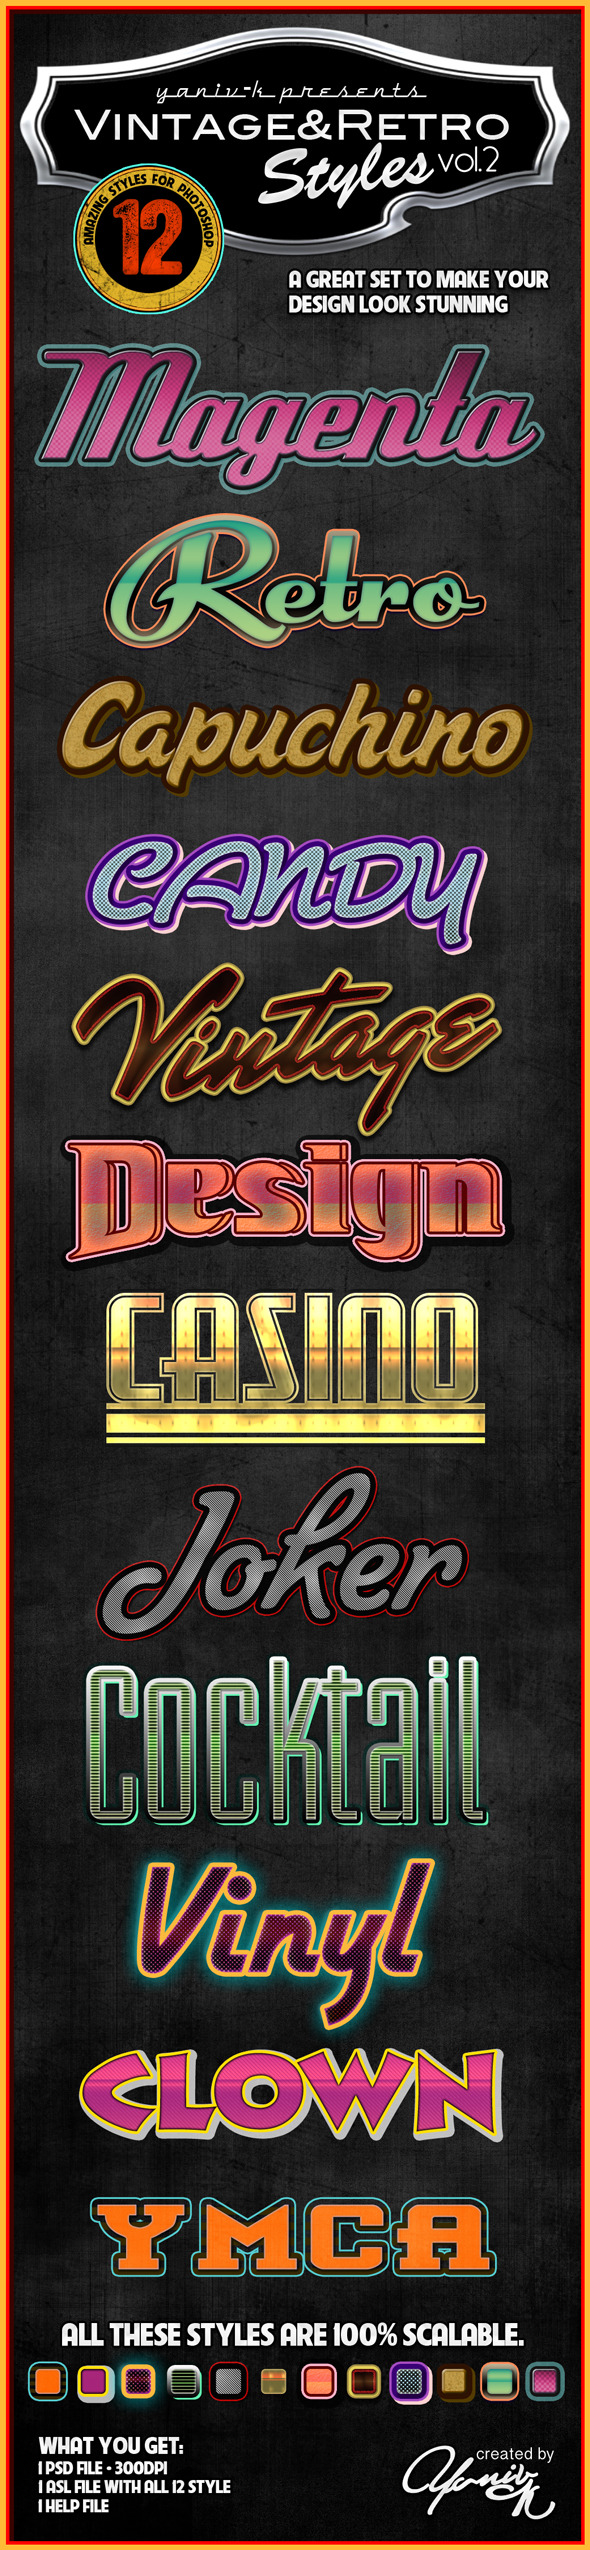 Vintage Retro Photoshop Styles Vol.2 - Text Effects Styles